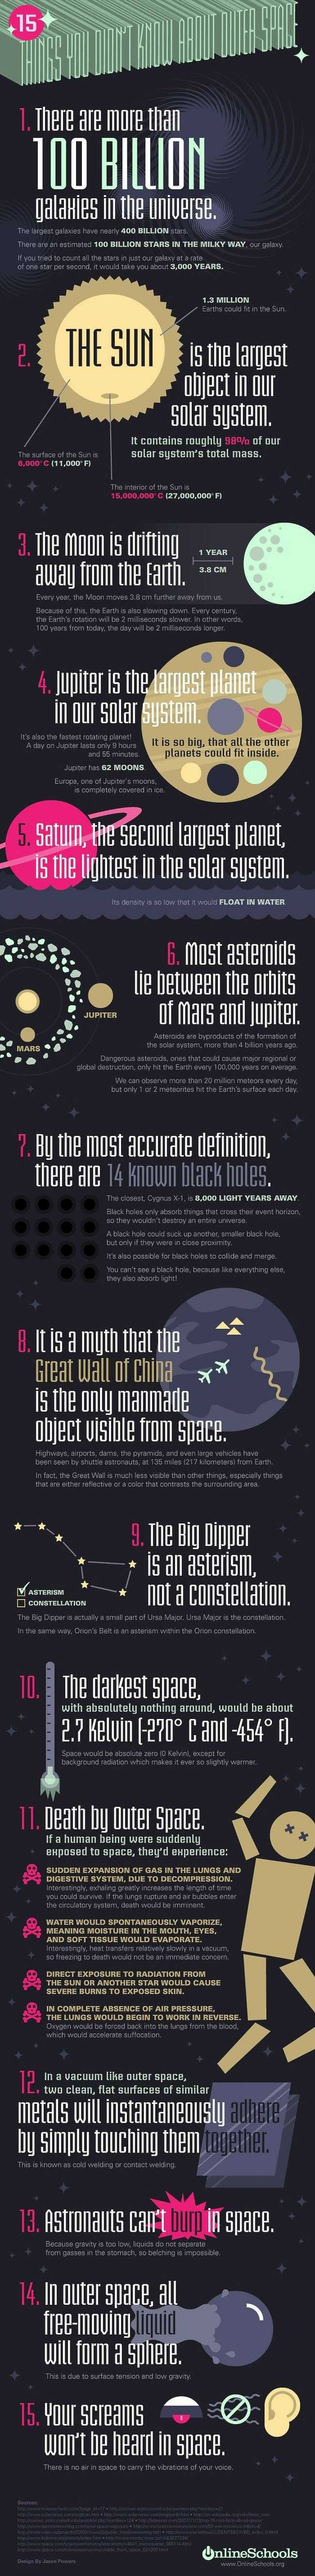 facts-about-out-space